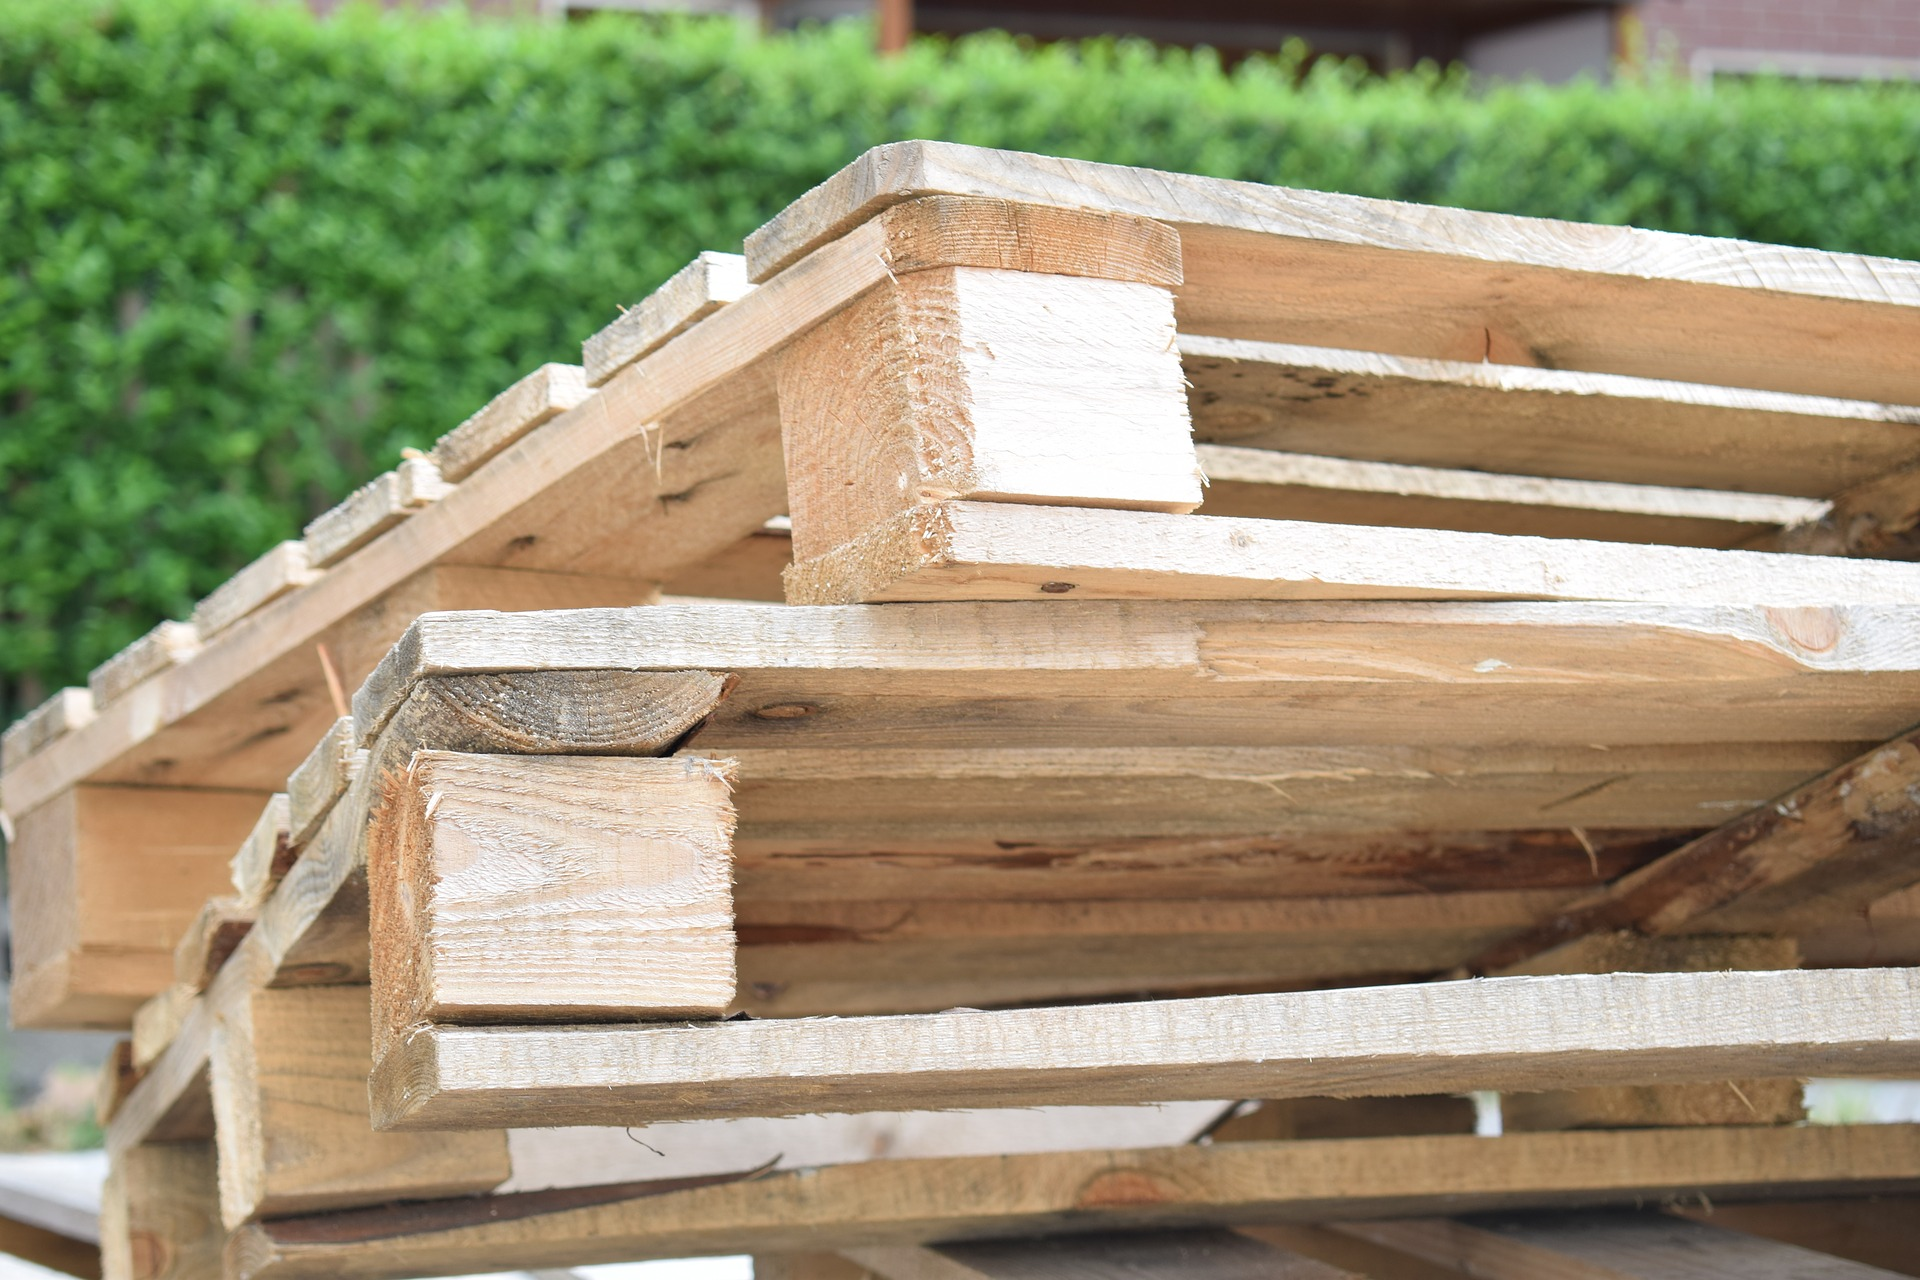 To pallet or not to pallet